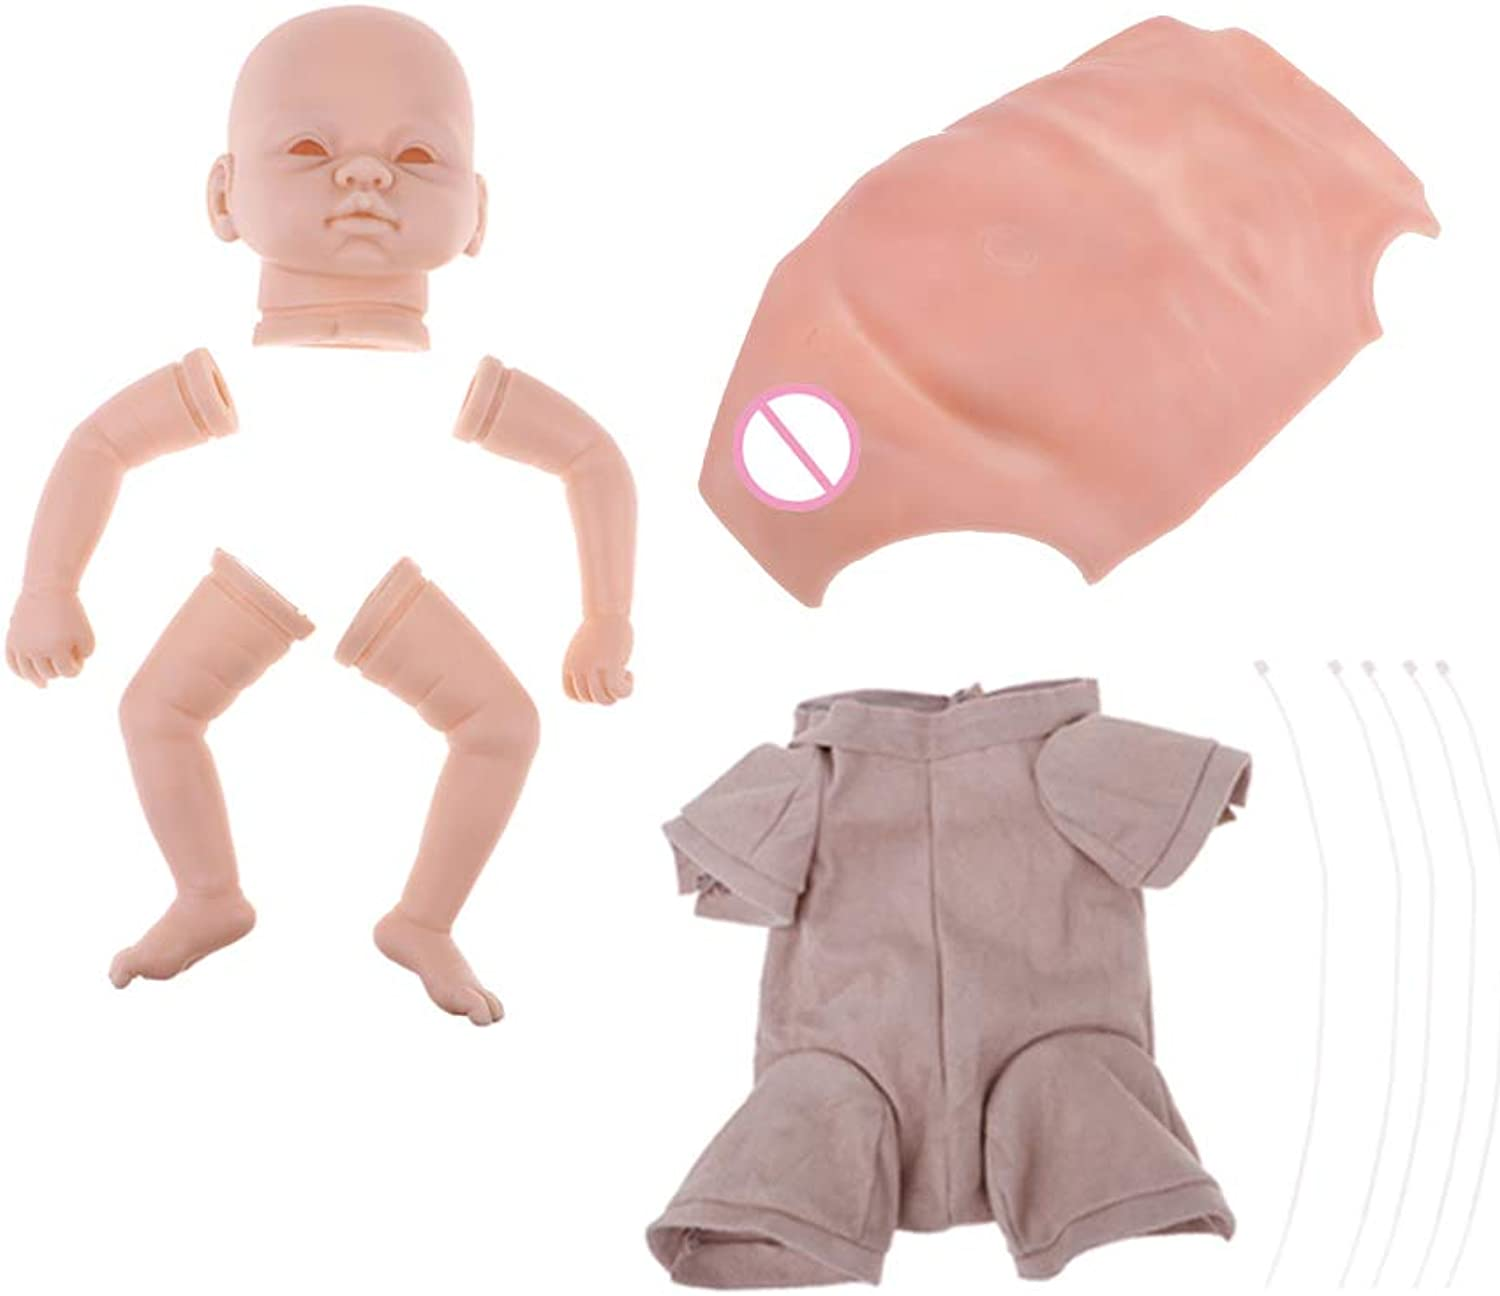 B Blesiya Unpainted Soft Vinyl Newborn Baby Doll Kit Set, Including Head, Legs, Arms, Cloth Body and Belly, Finished Size 22inch